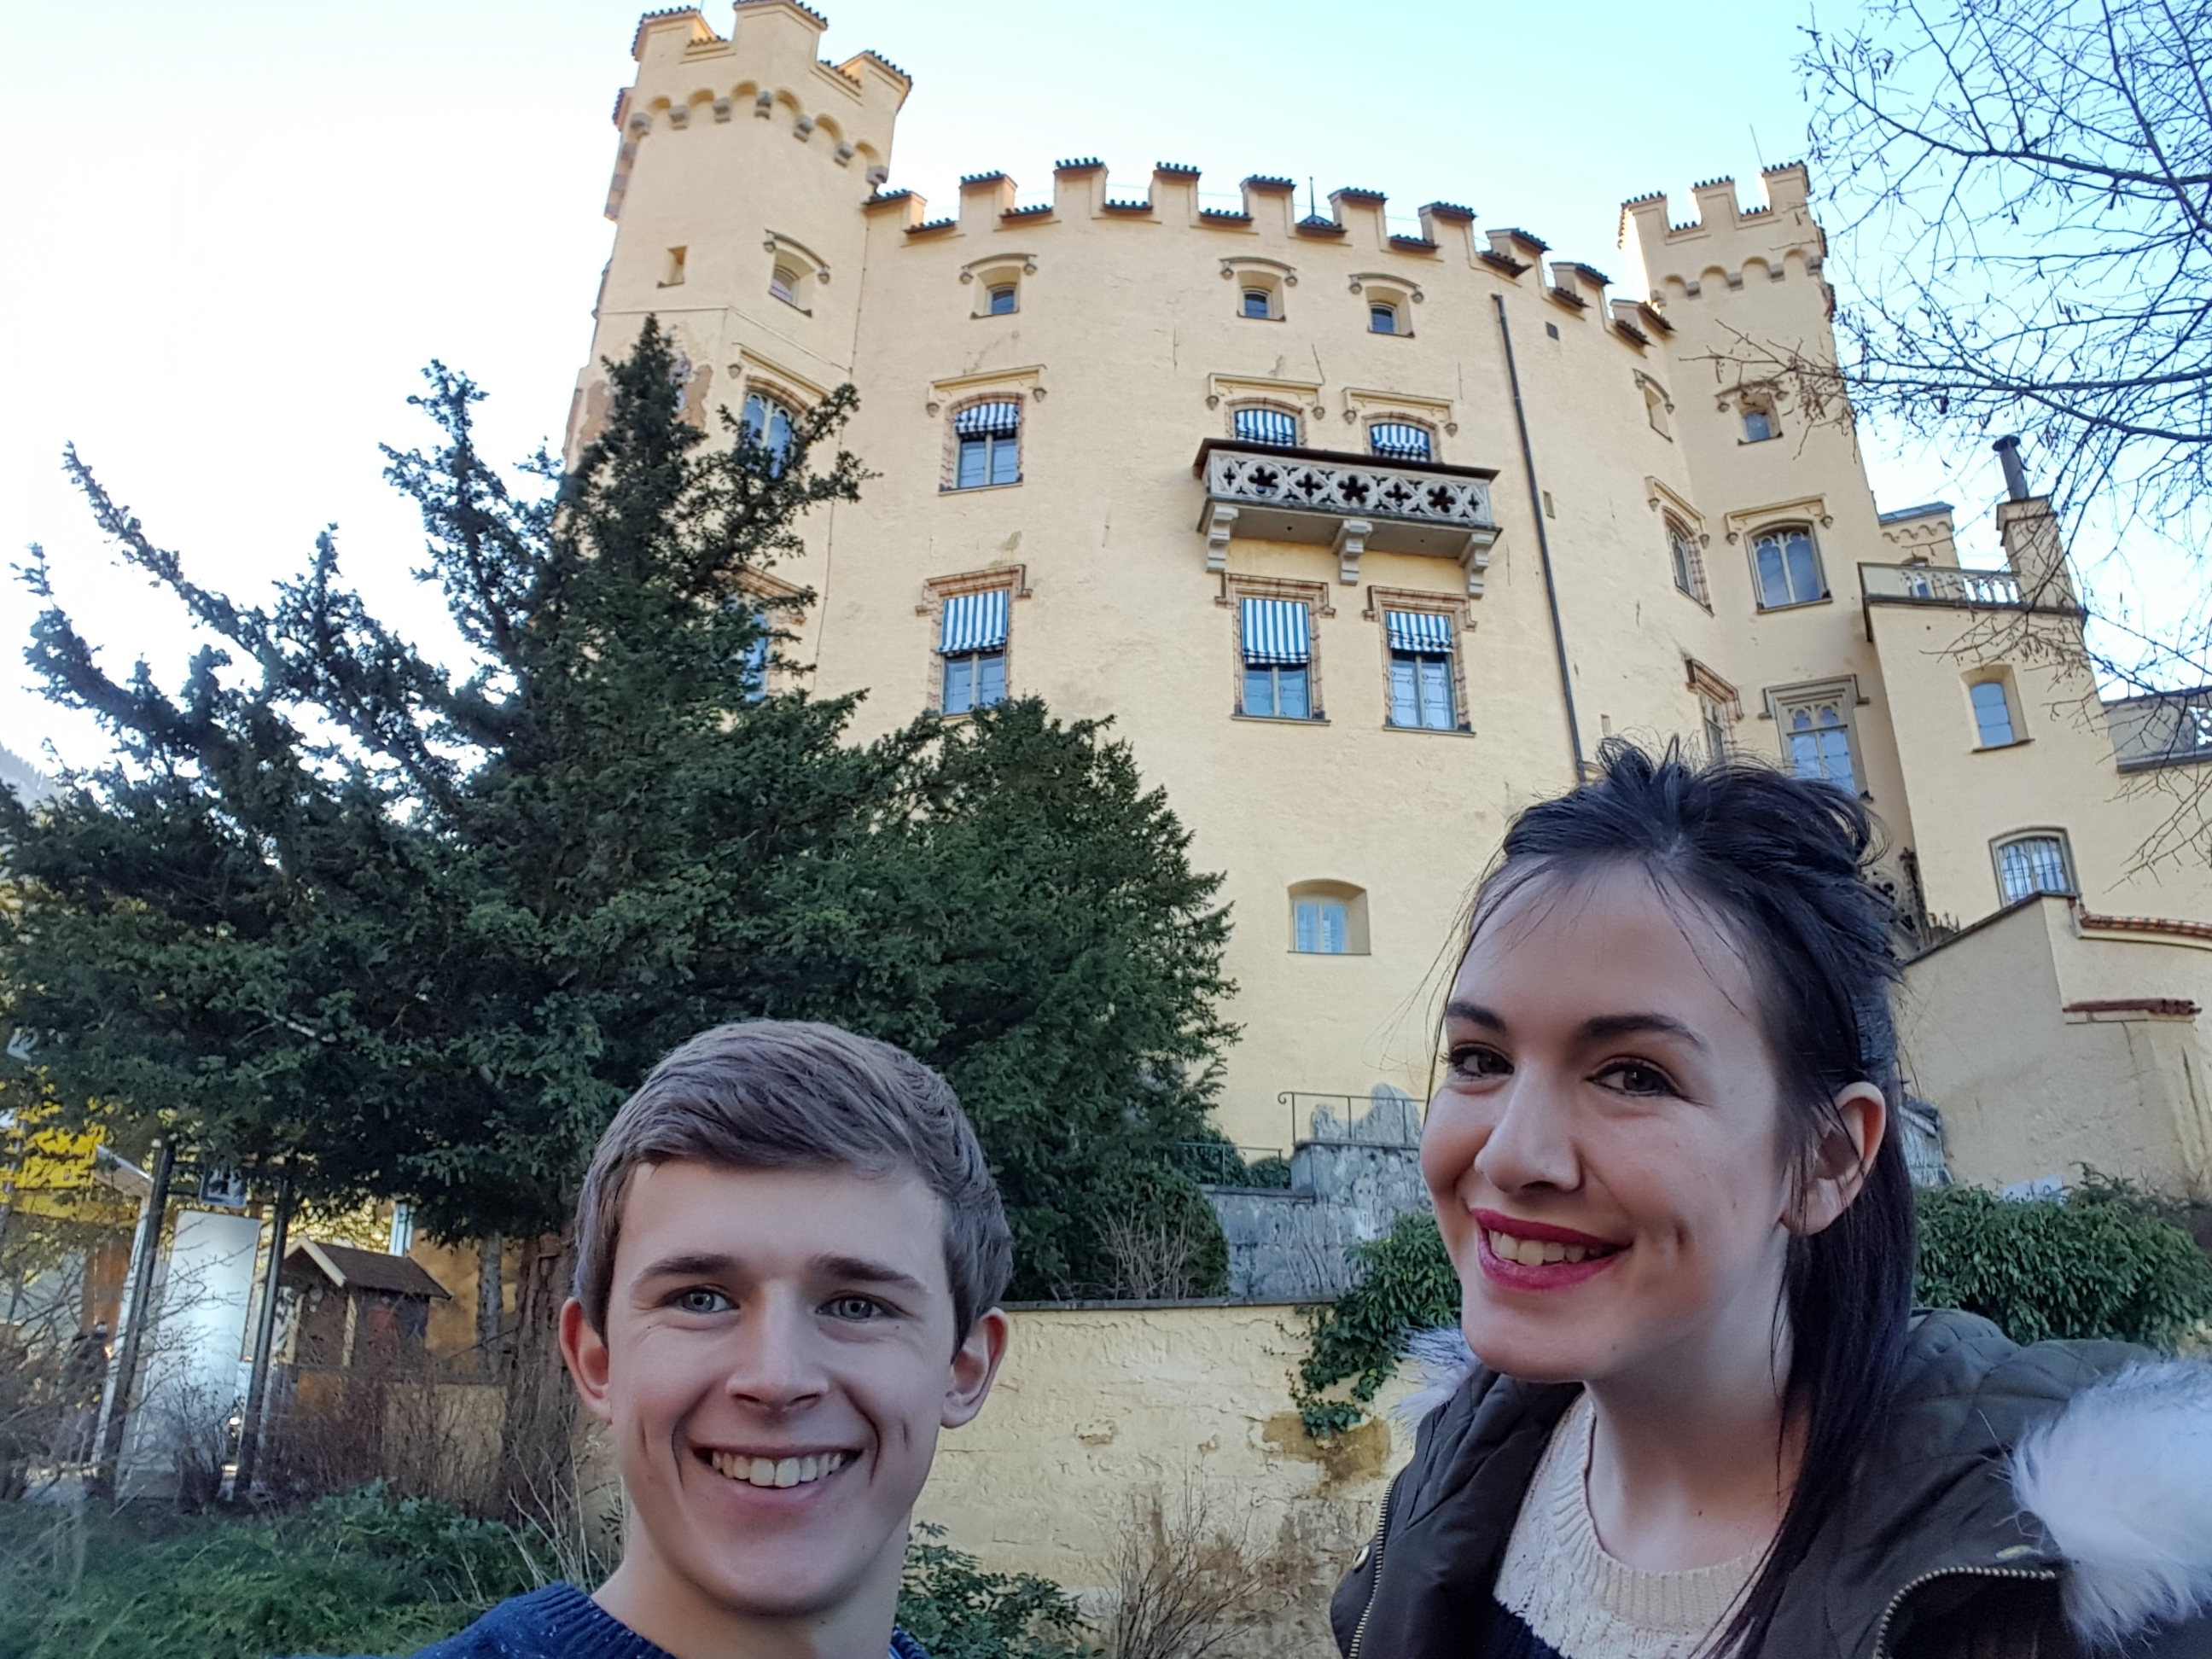 Us at Hohenschwangau Castle, Southern Bavaria